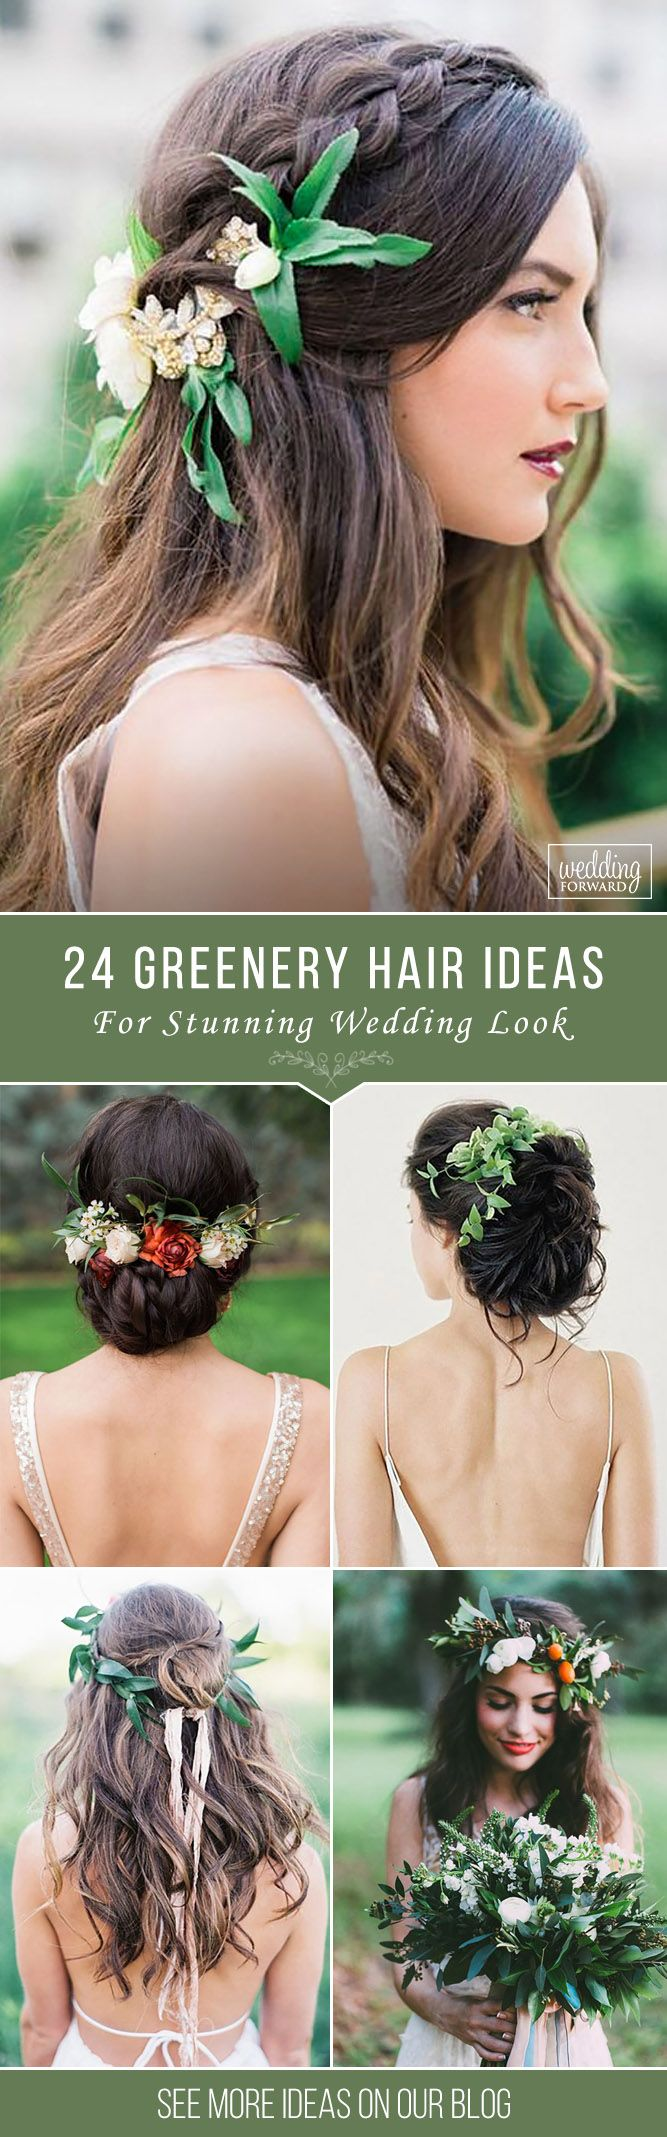 24 Stunning Greenery Wedding Hair Ideas ❤ Don't waste your time on searching...